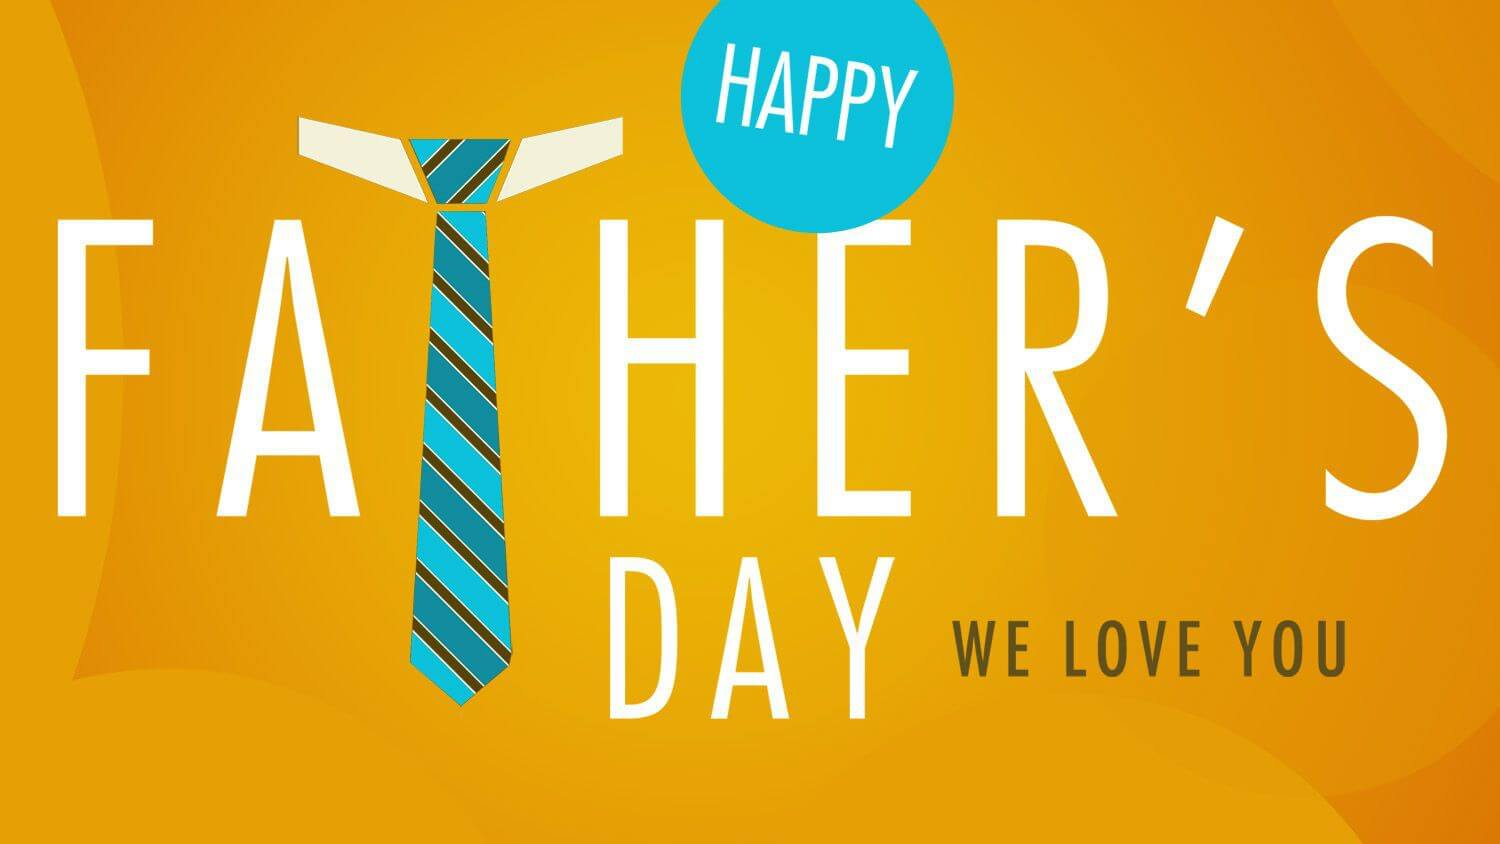 fathers day hd wallpaper